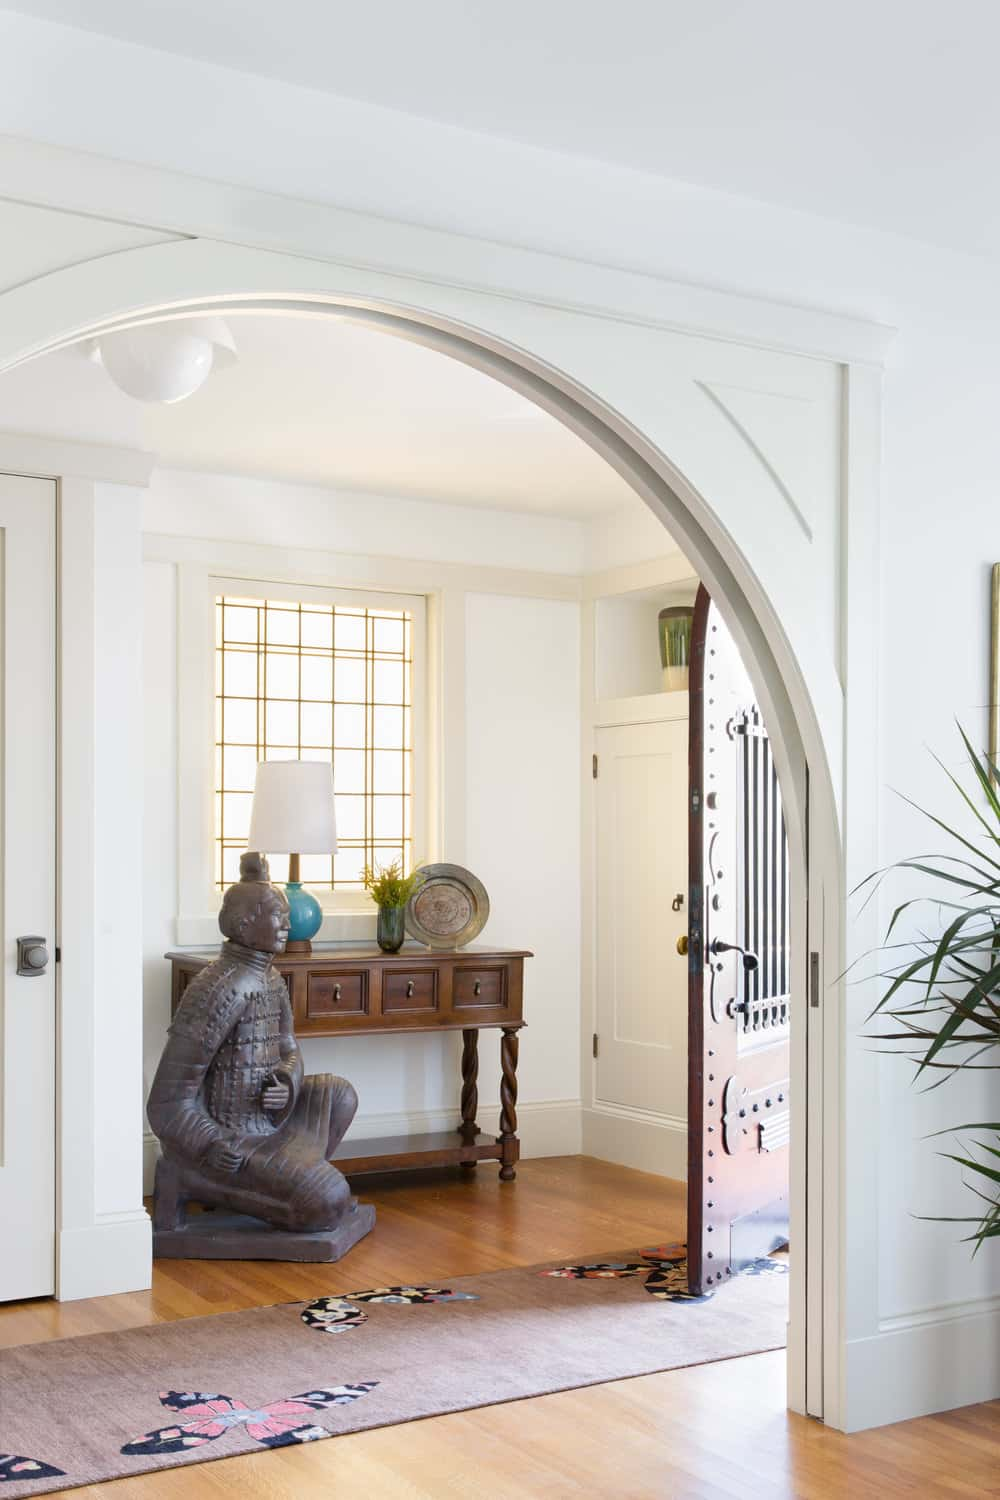 Entryway with bronze sculpture